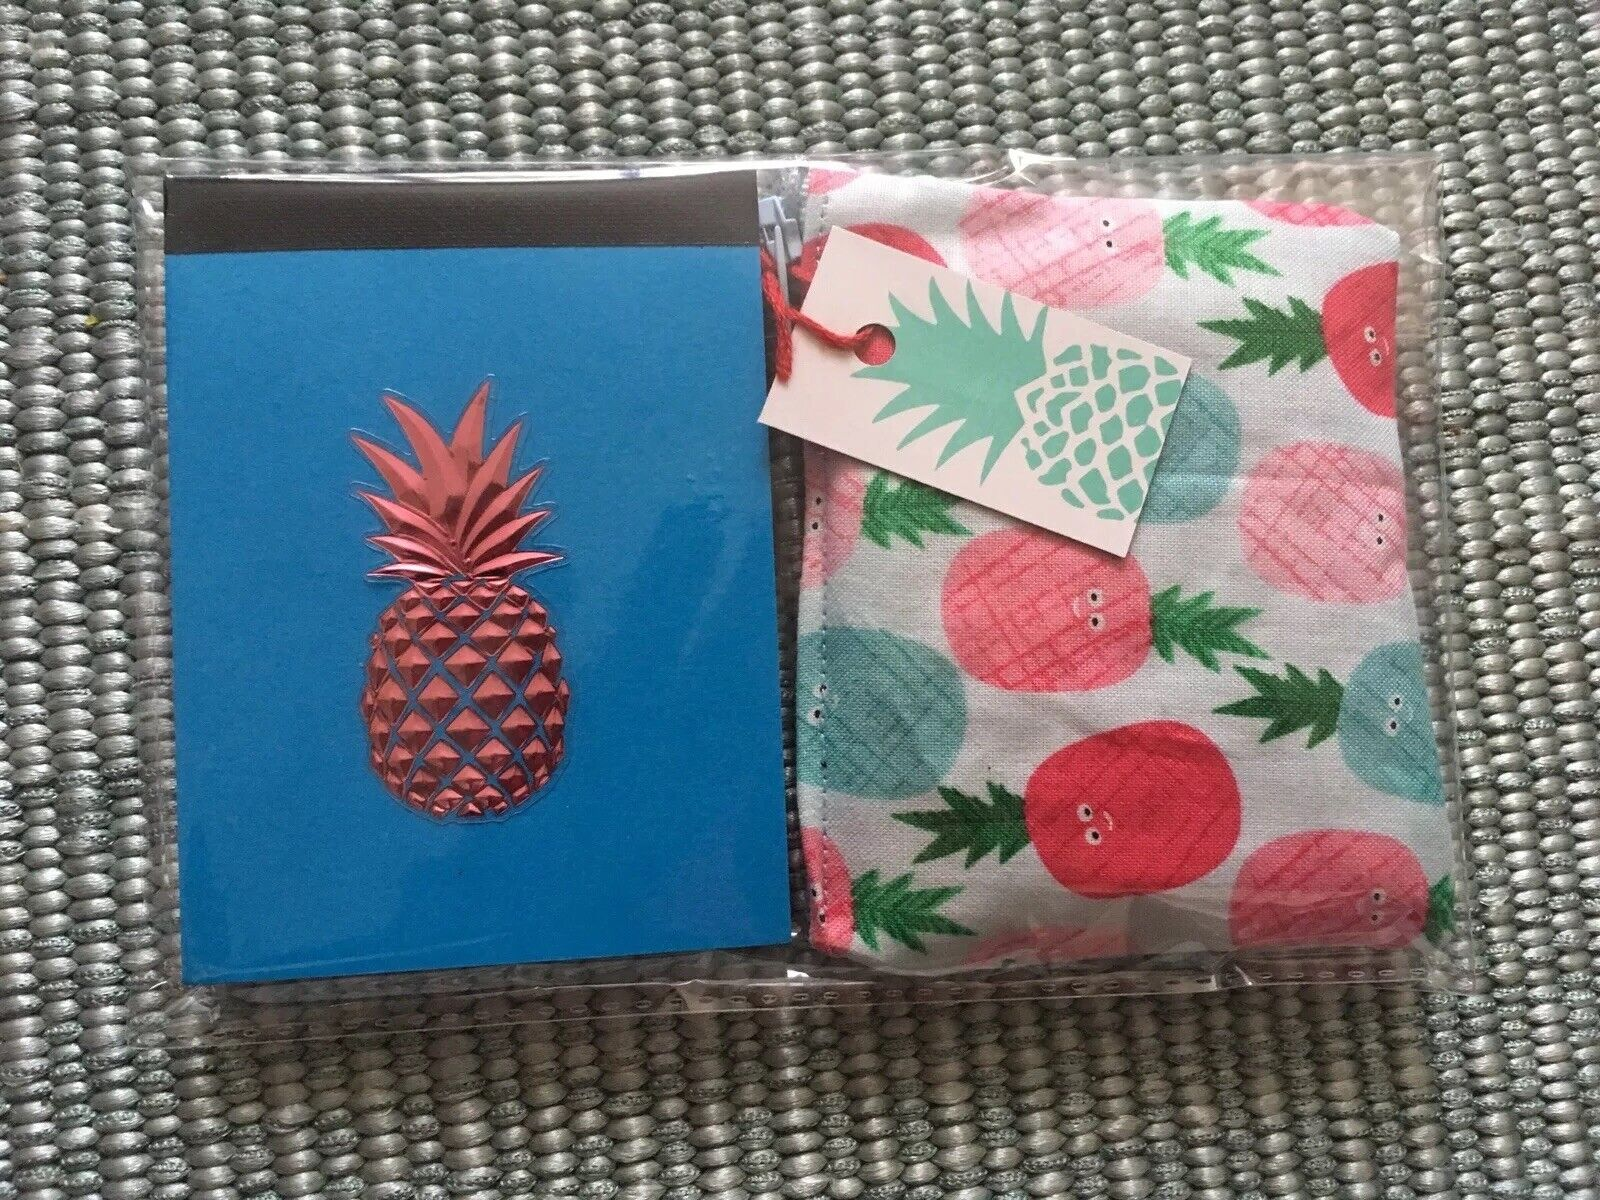 Funky Retro Kitsch Blue & Red 🍍Pineapple Notebook + Purse 2pc Gift Set